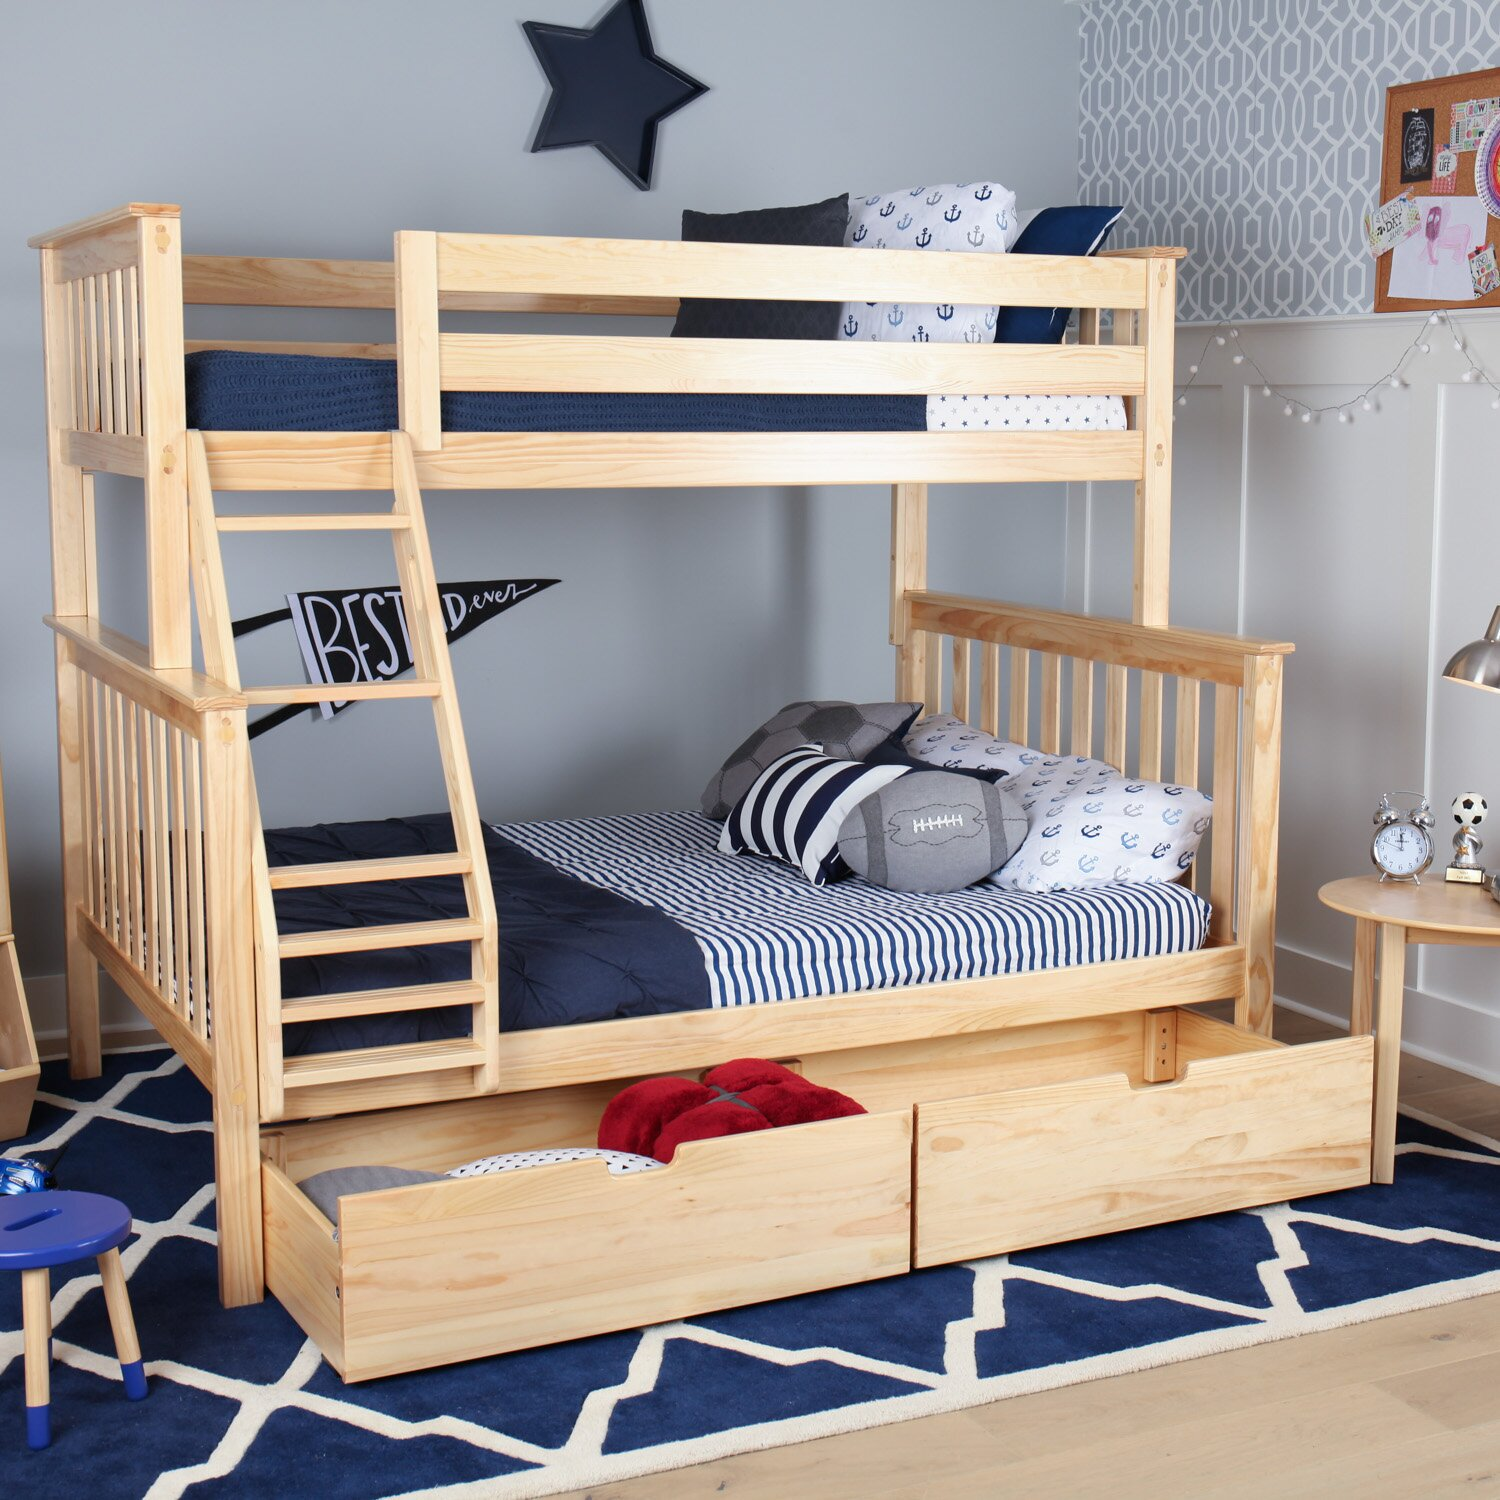 Max & Lily Solid Wood Twin Over Fulll Bunk Bed with Under